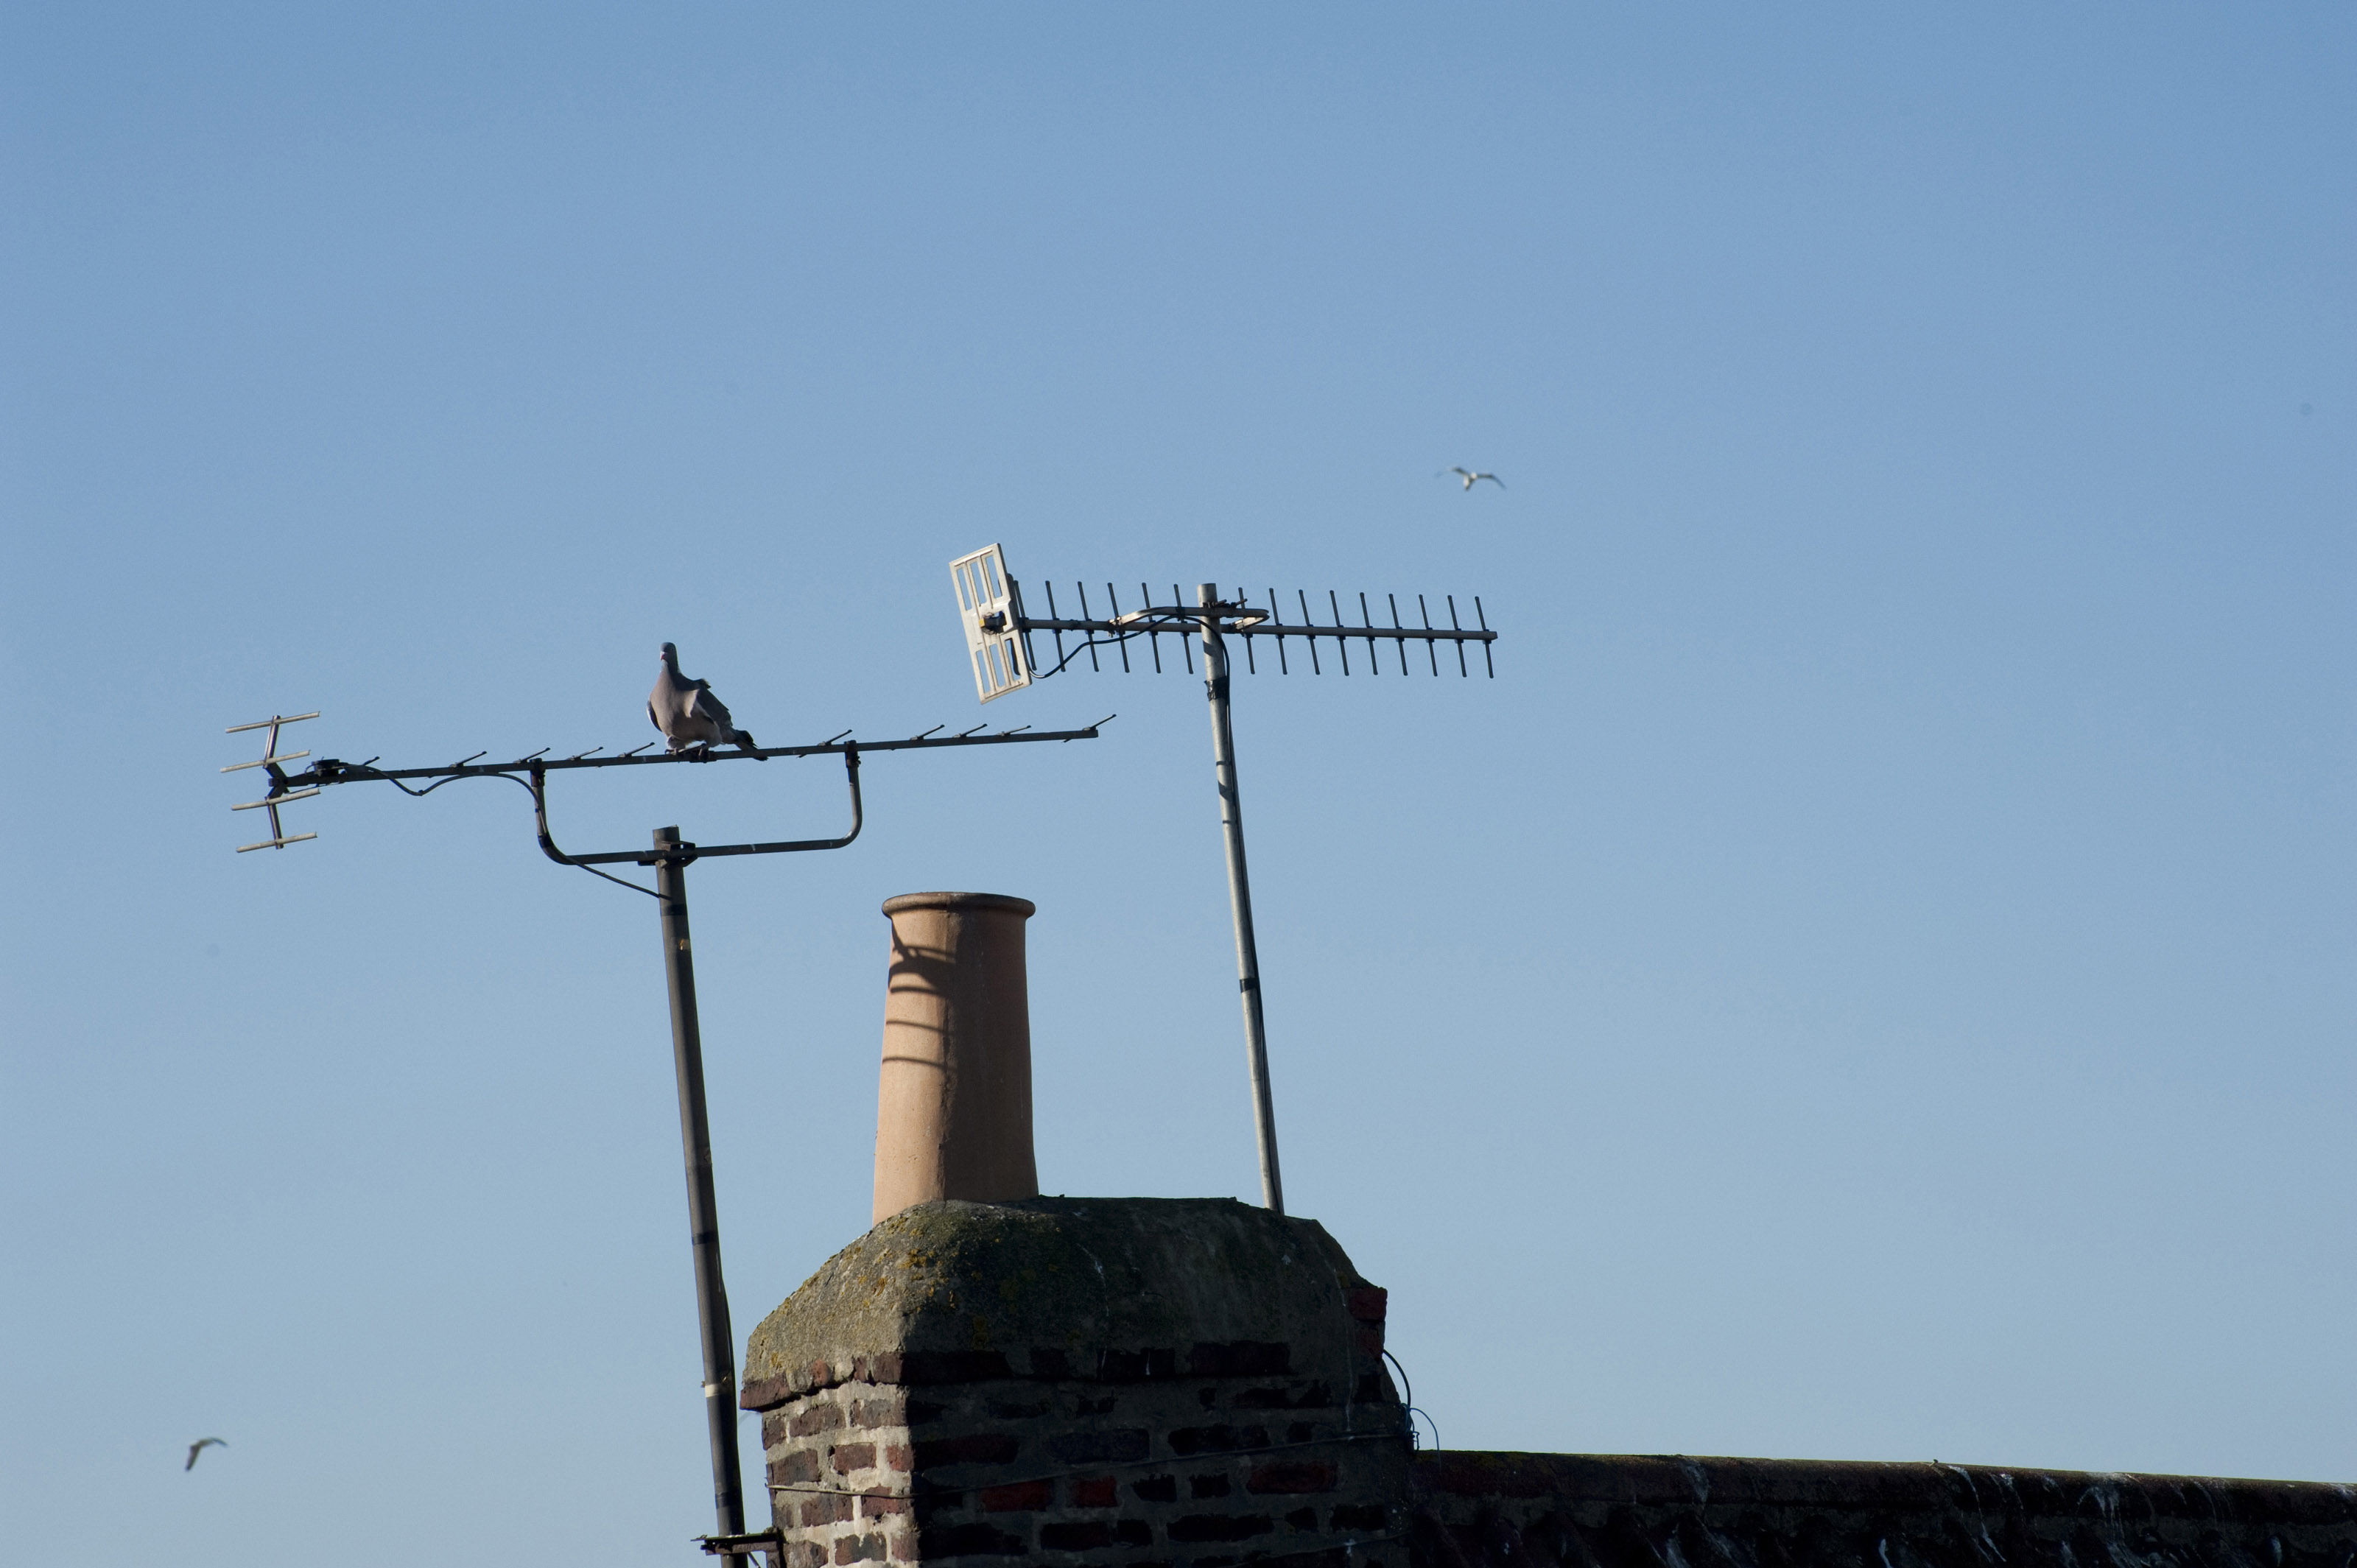 Chimney and TV antennas-4048 | Stockarch Free Stock Photos